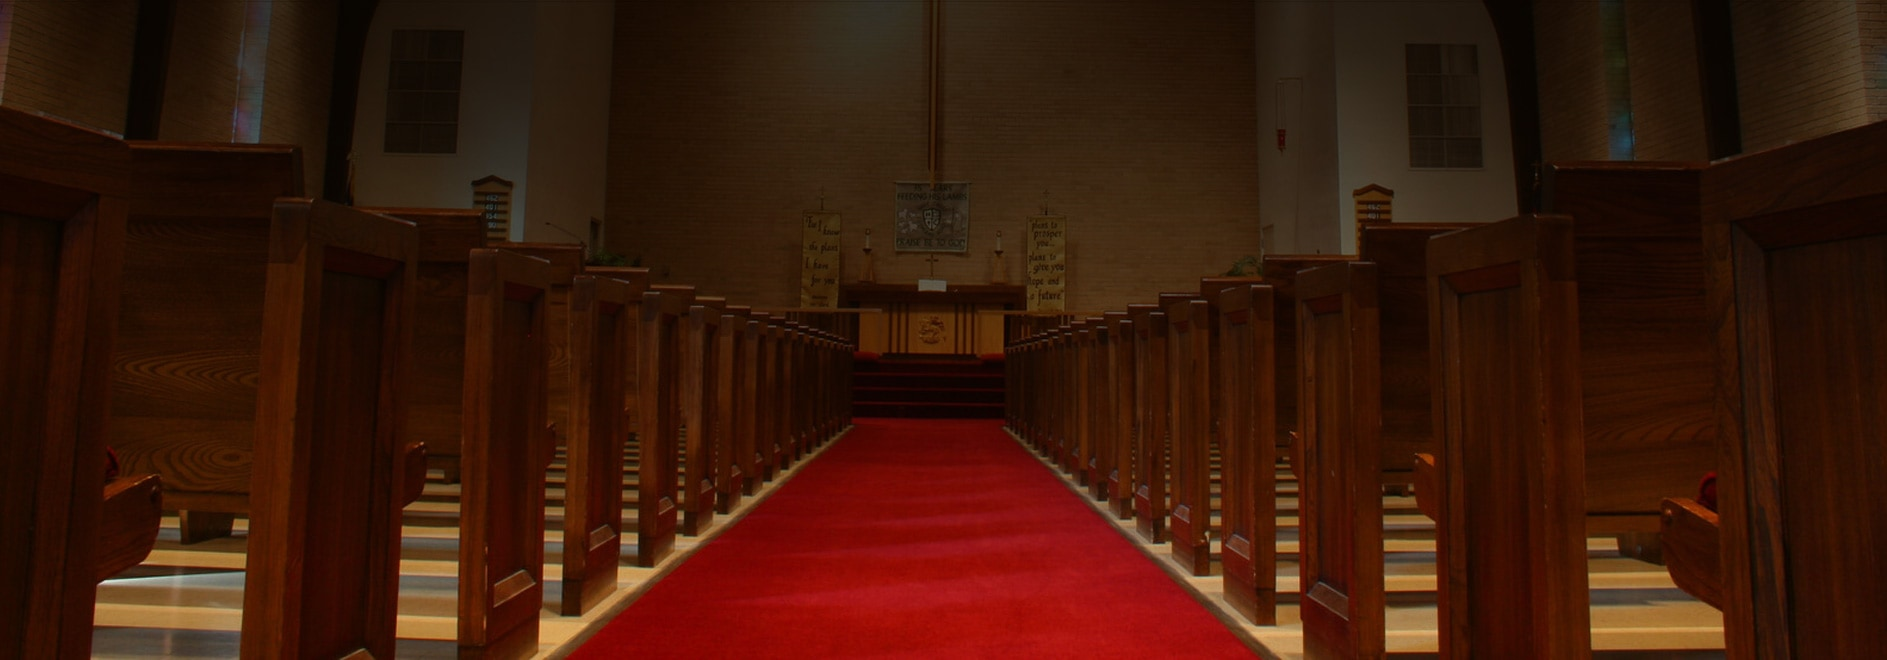 WEBSITE DESIGN FOR CHURCHES, MINISTRIES